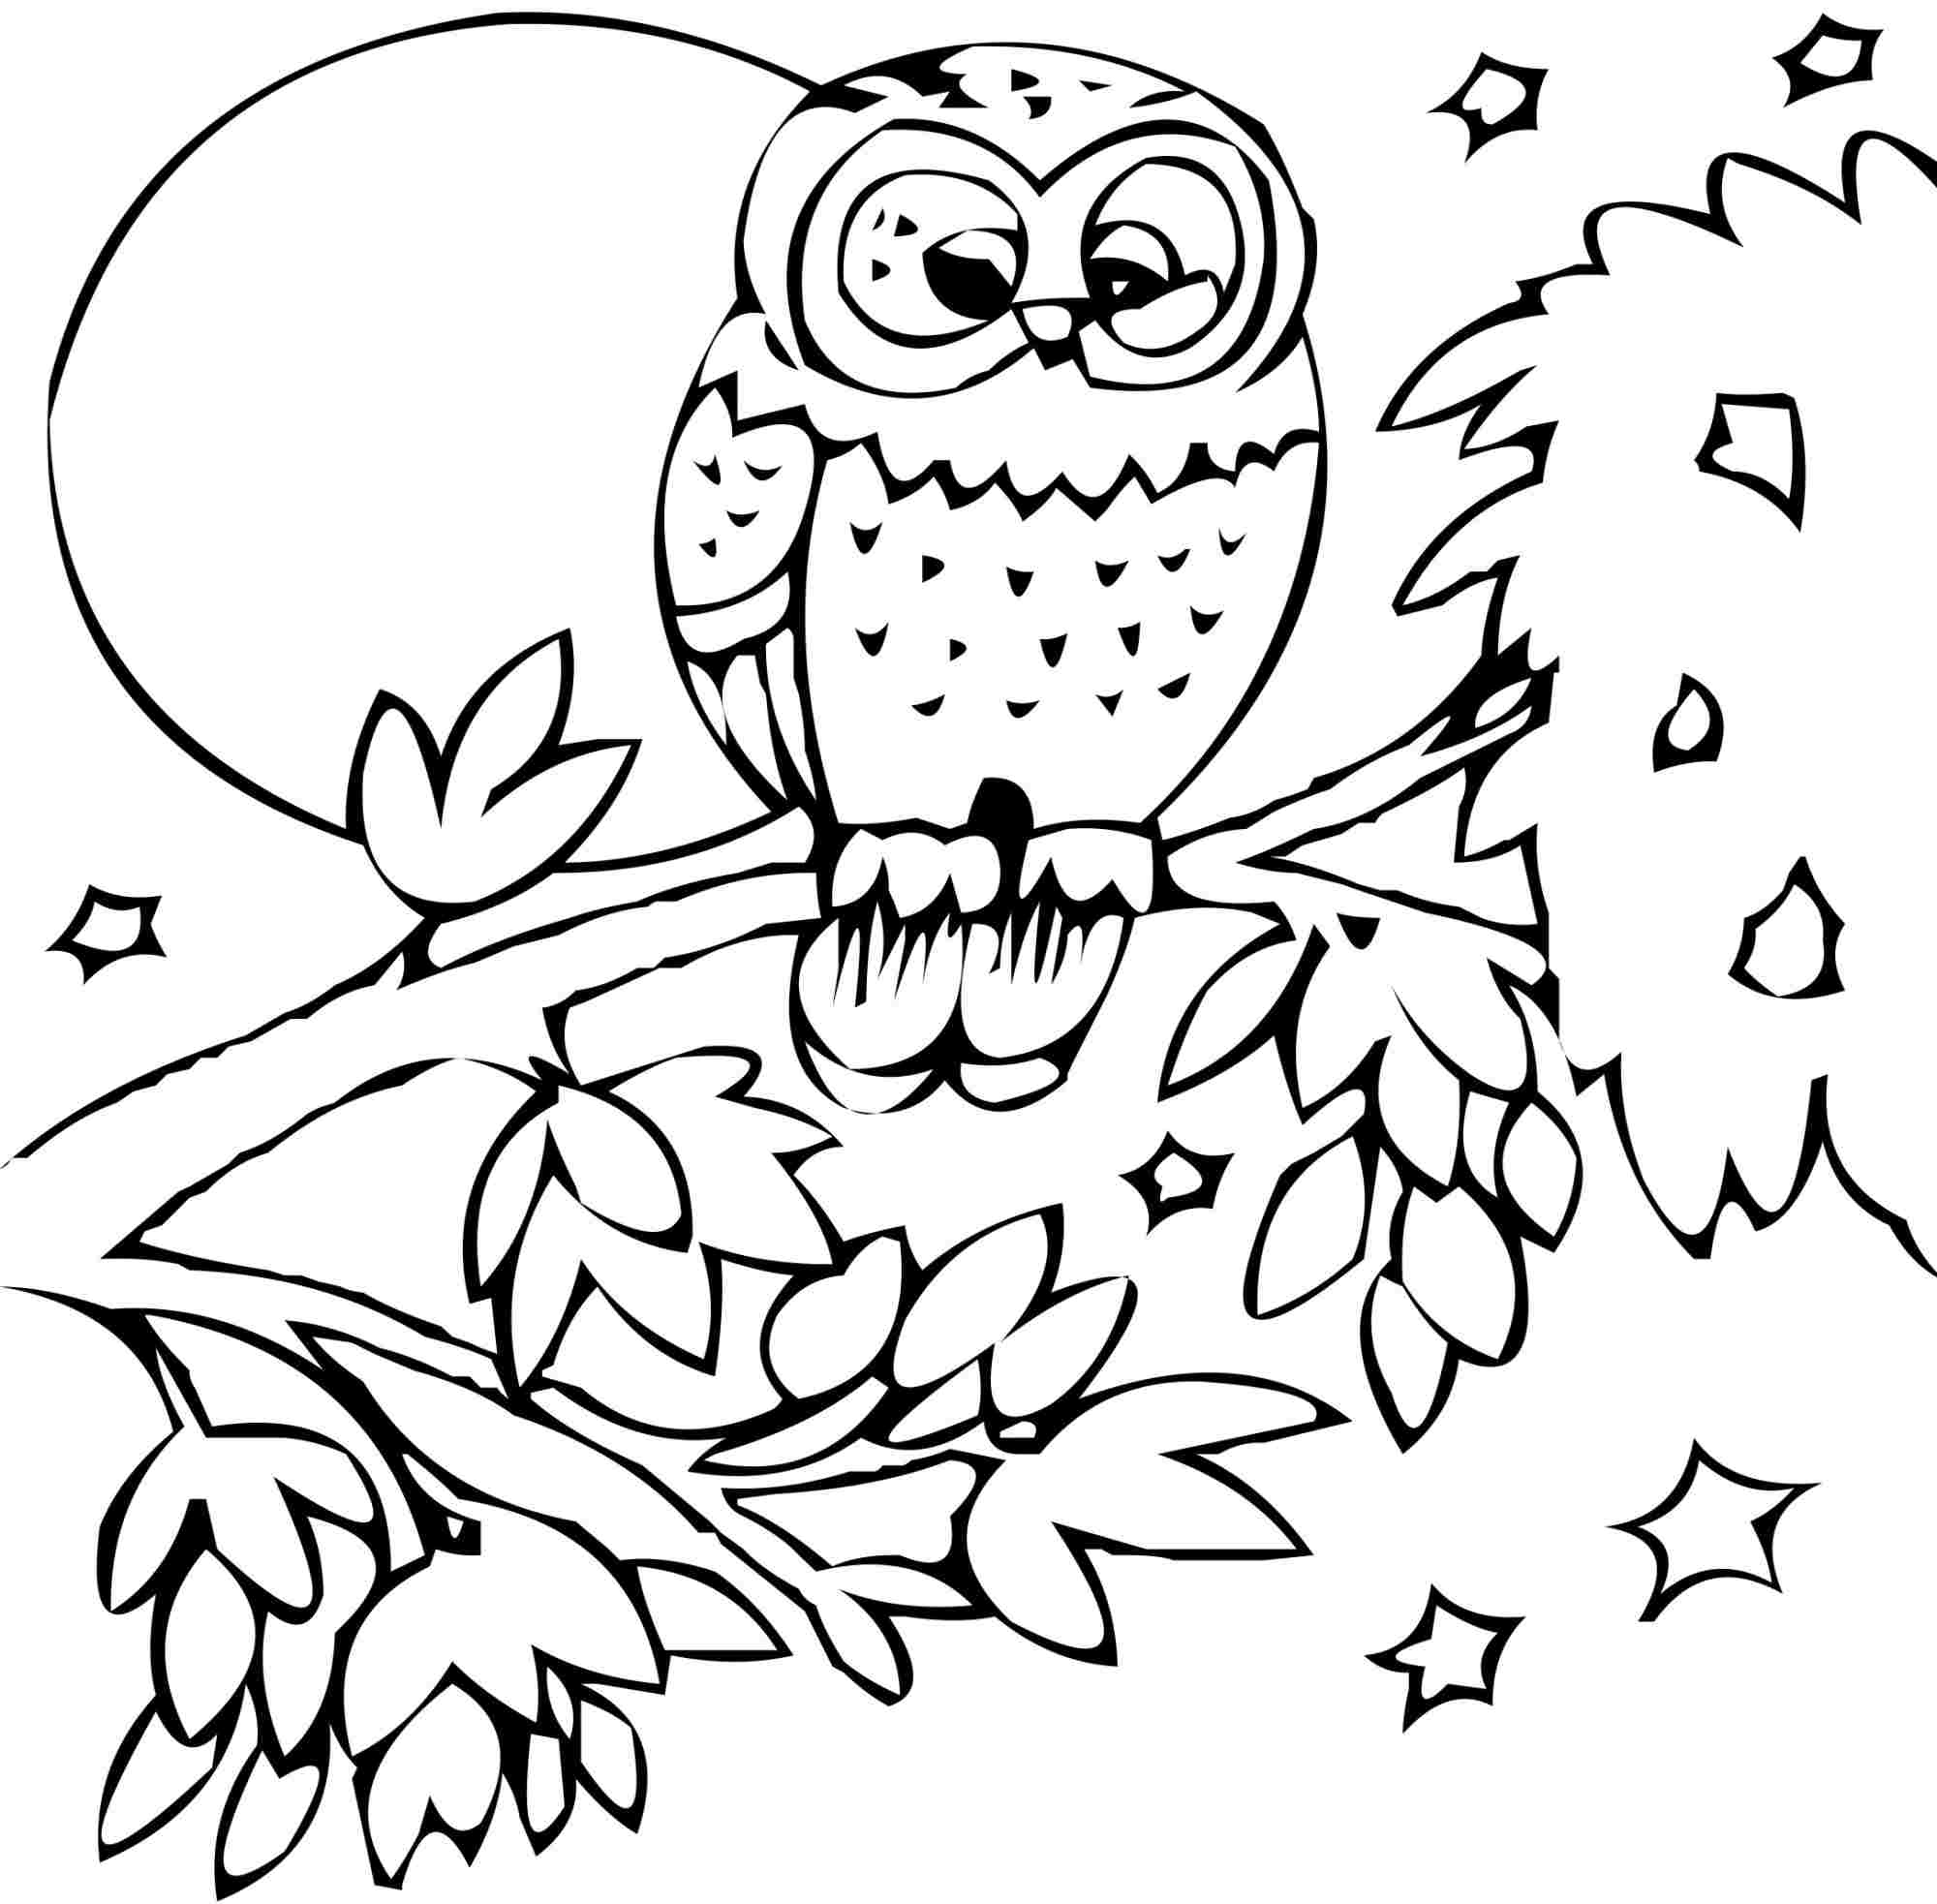 Animal Coloring Pages For Kids At Getcolorings